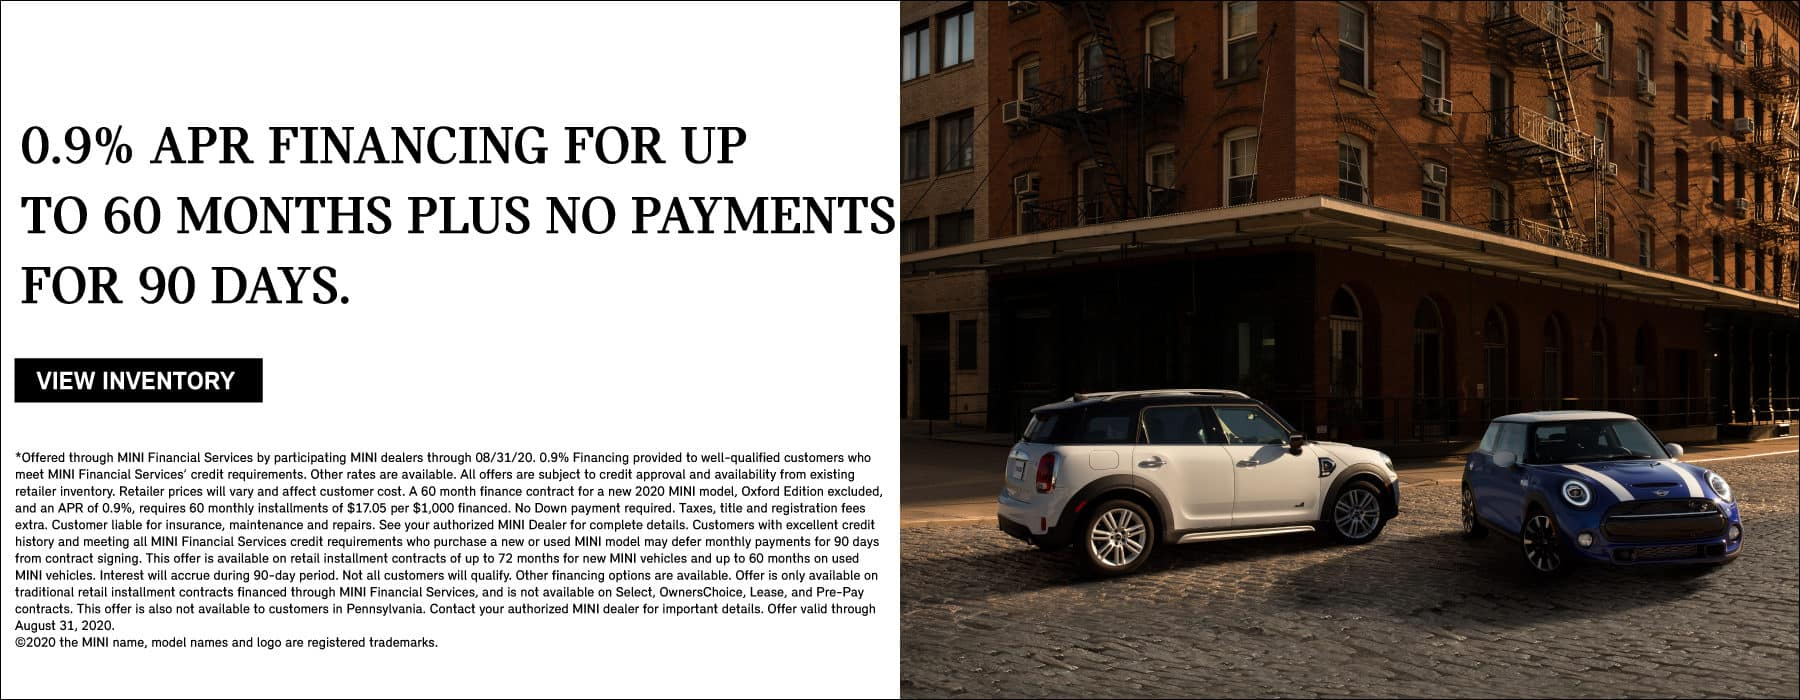 0.9% APR FINANCING FOR UP TO 60 MONTHS PLUS 90 DAYS TO FIRST PAYMENT